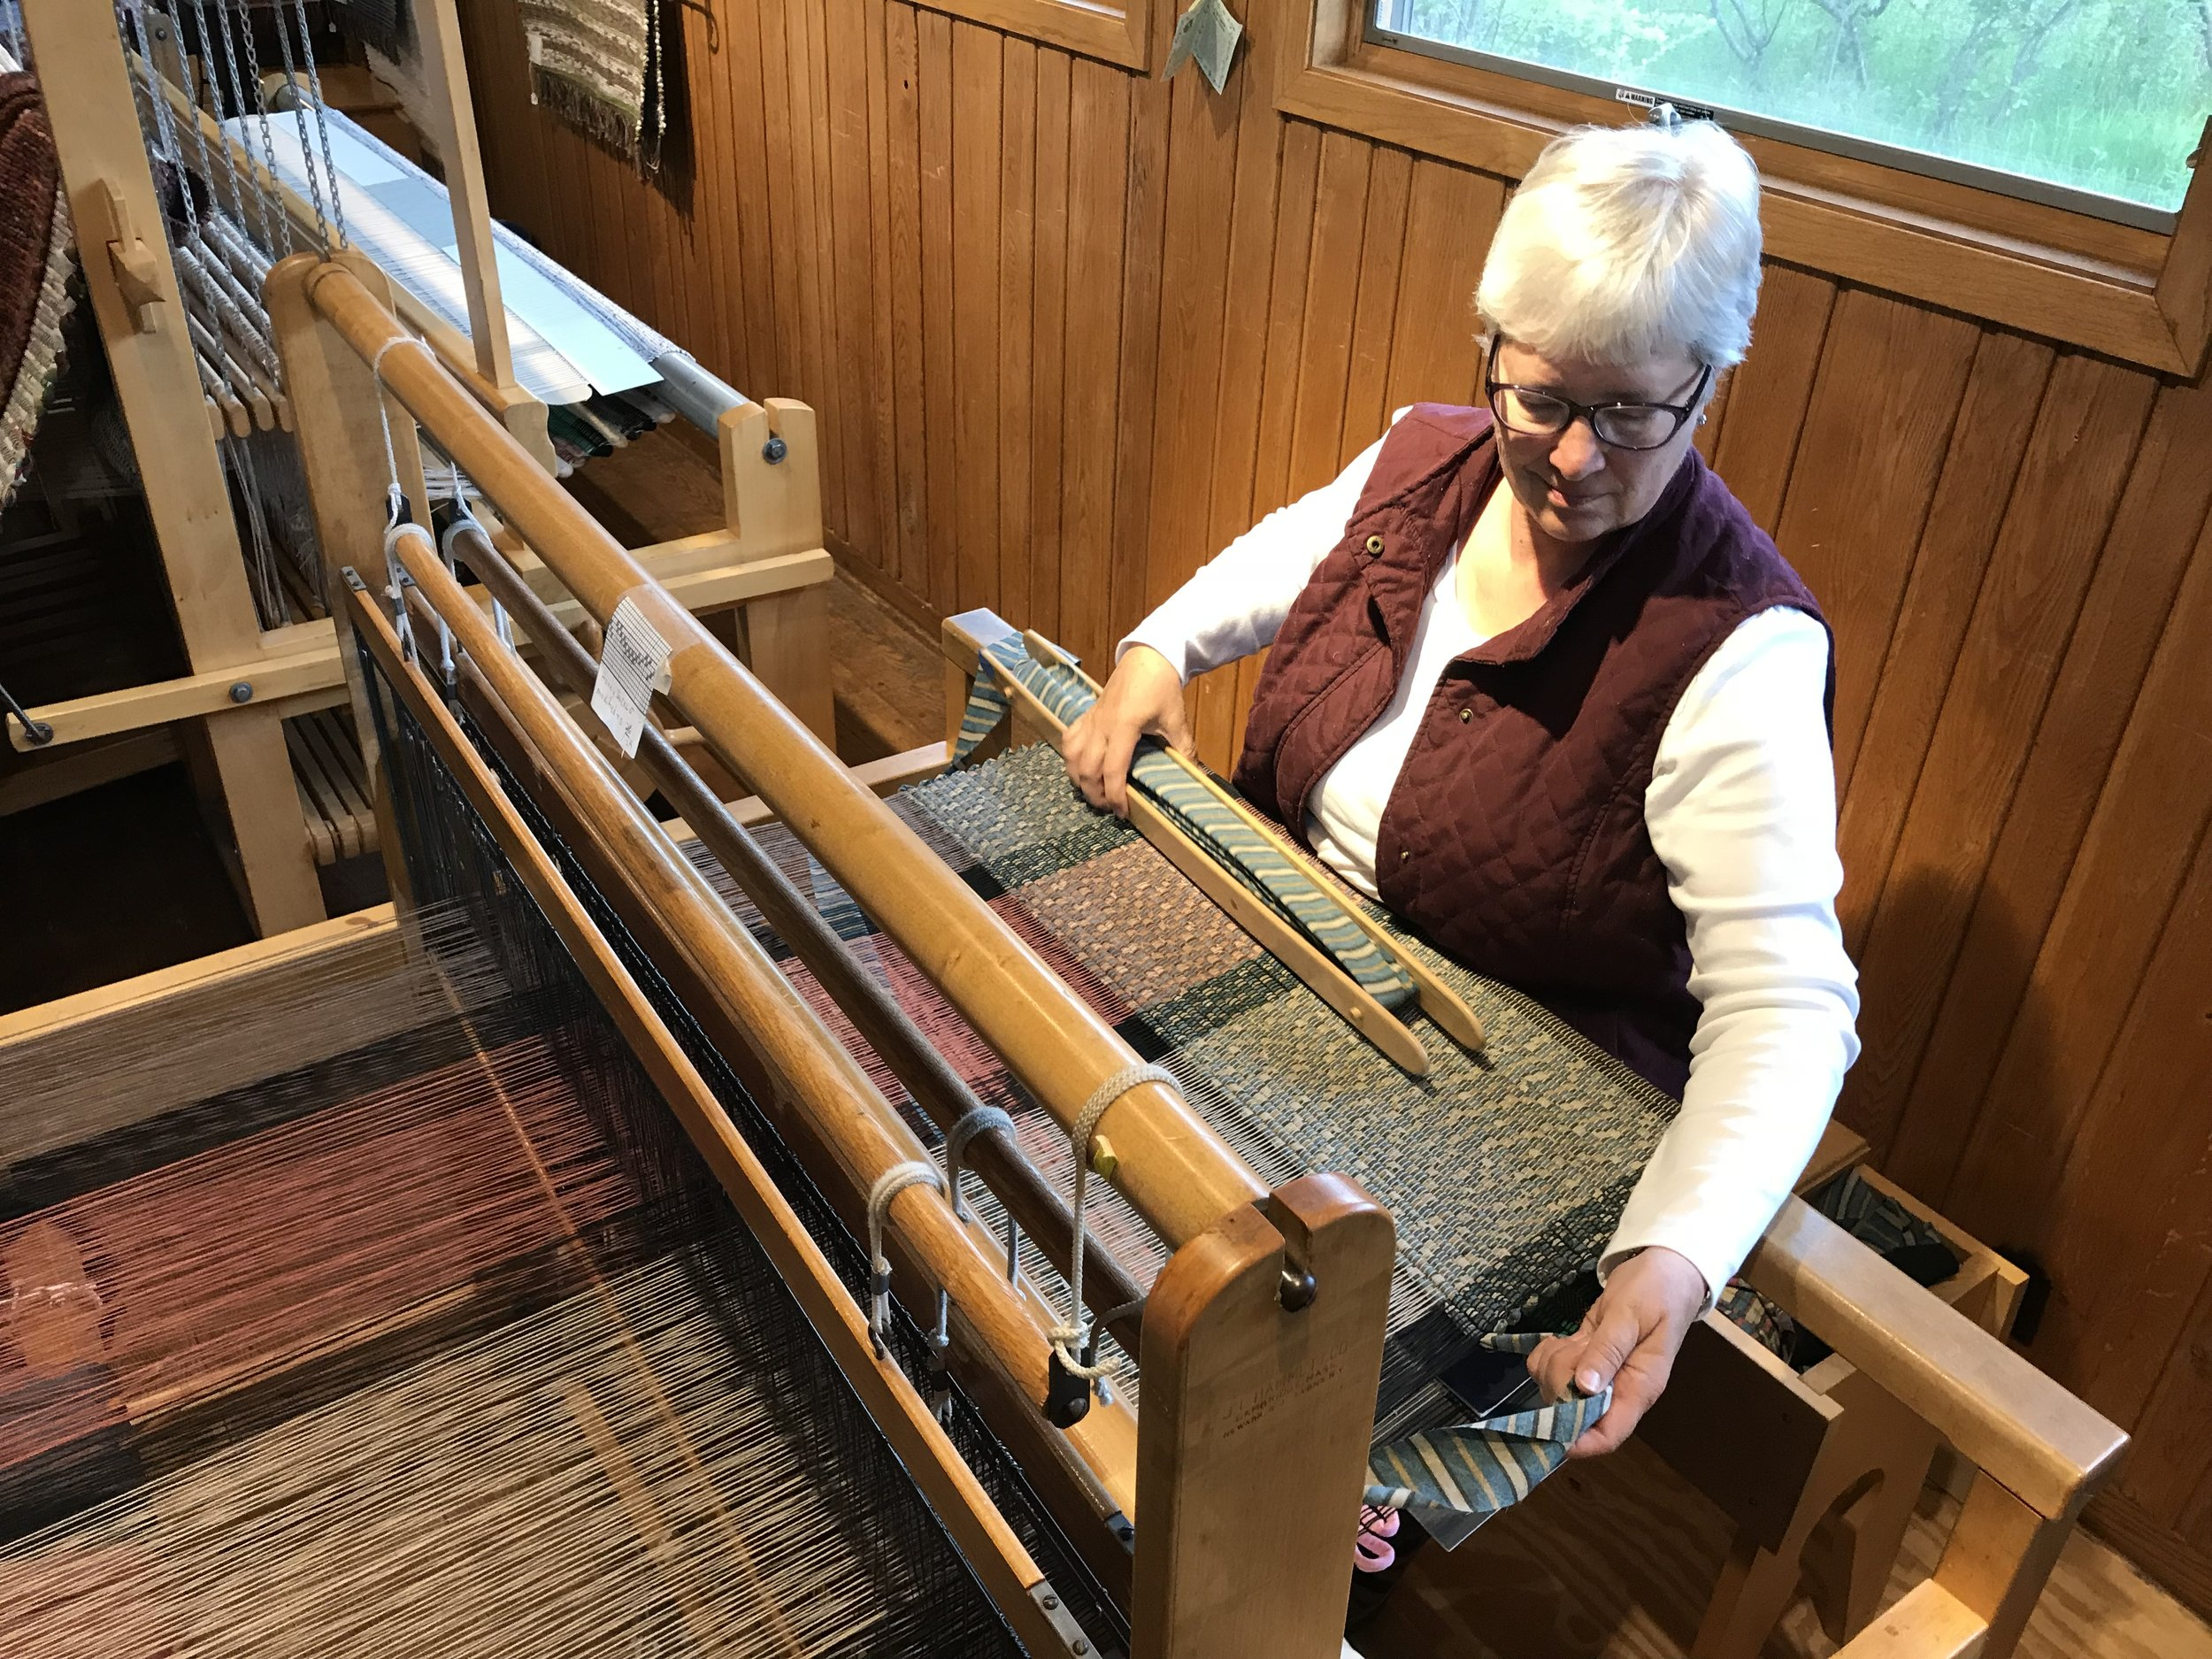 Karen Madson can often be heard beating away her weft on the rugs in the early mornings of summer. We love our mornings with Karen.